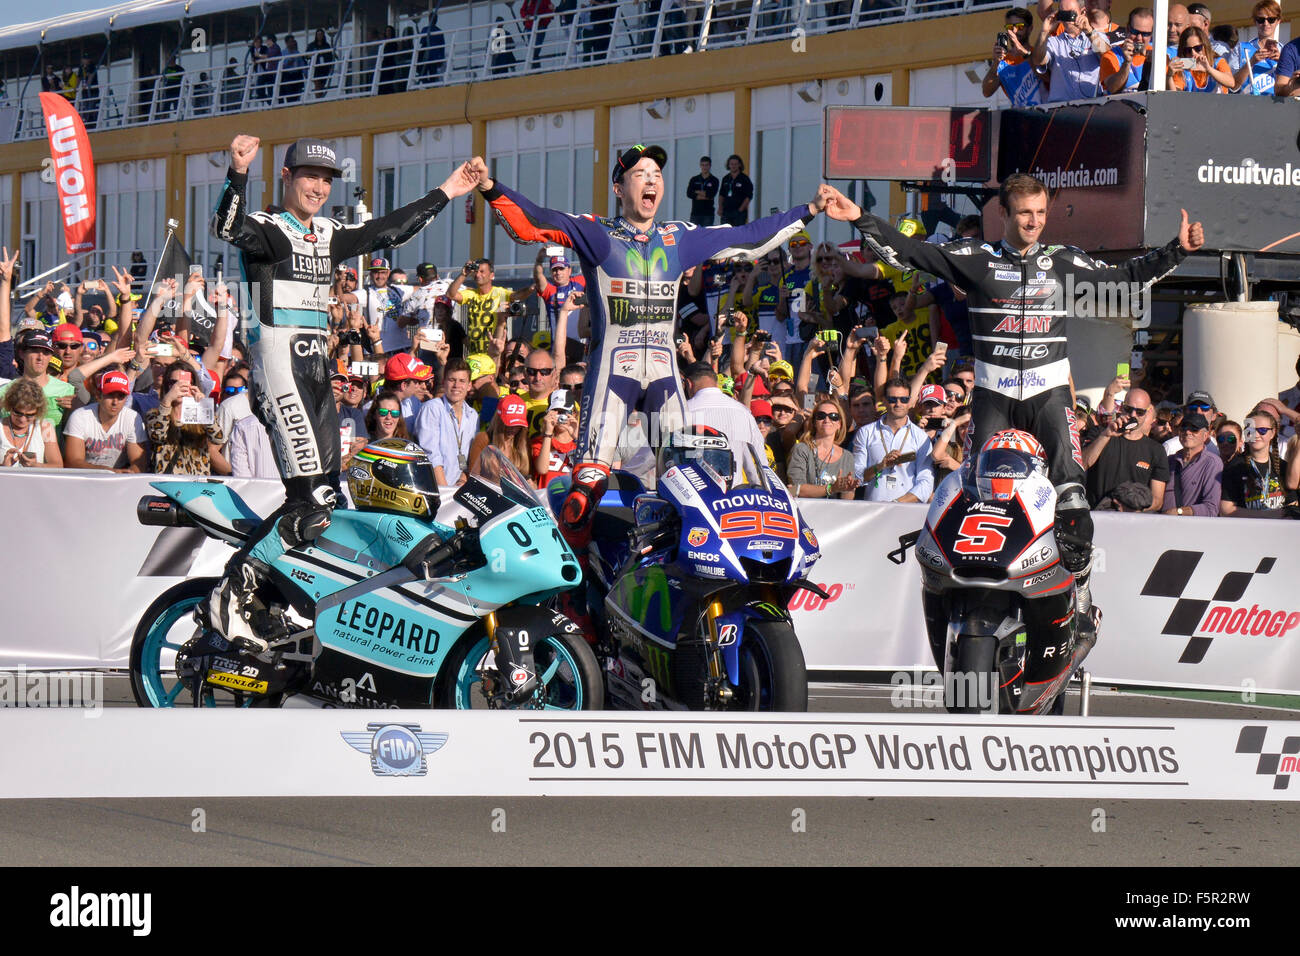 The three world champions motorcycling, Jorge Lorenzo,  Danny Kent and Johann Zarco, celebrating the MotoGP World - Stock Image